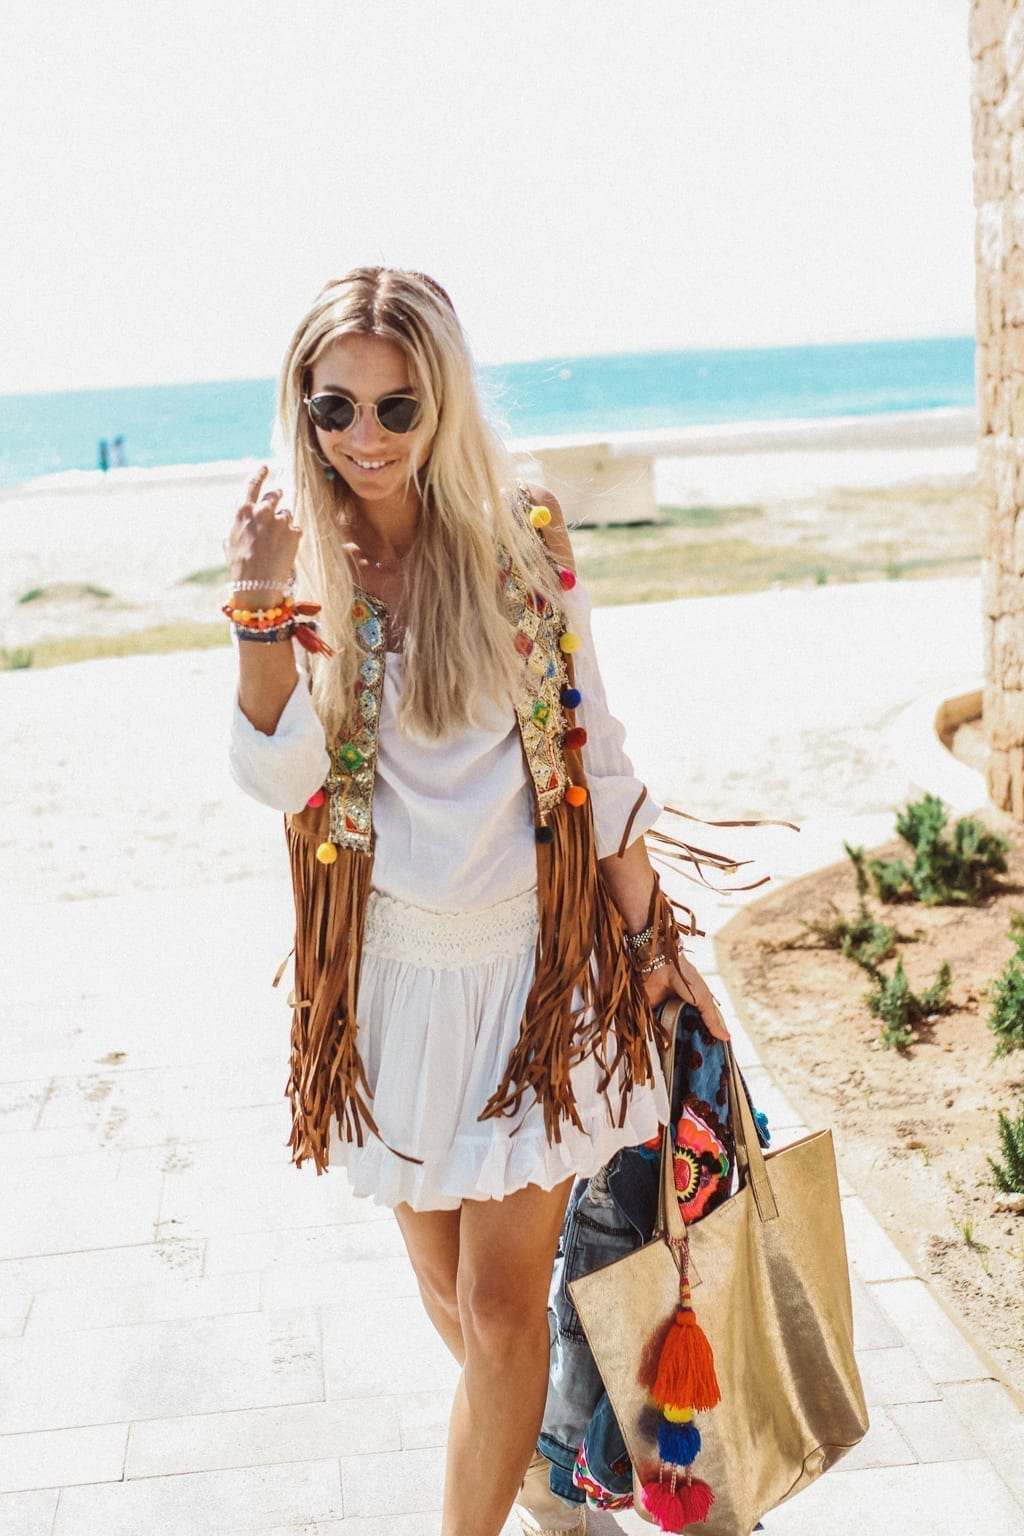 CK1605_Constantly-K-Karin-Kaswurm-Georg-Teigl-Ibiza-Holiday-Spain-Blog-Street-Style-Fashion-Boho-Chic-Beach-Style-7733